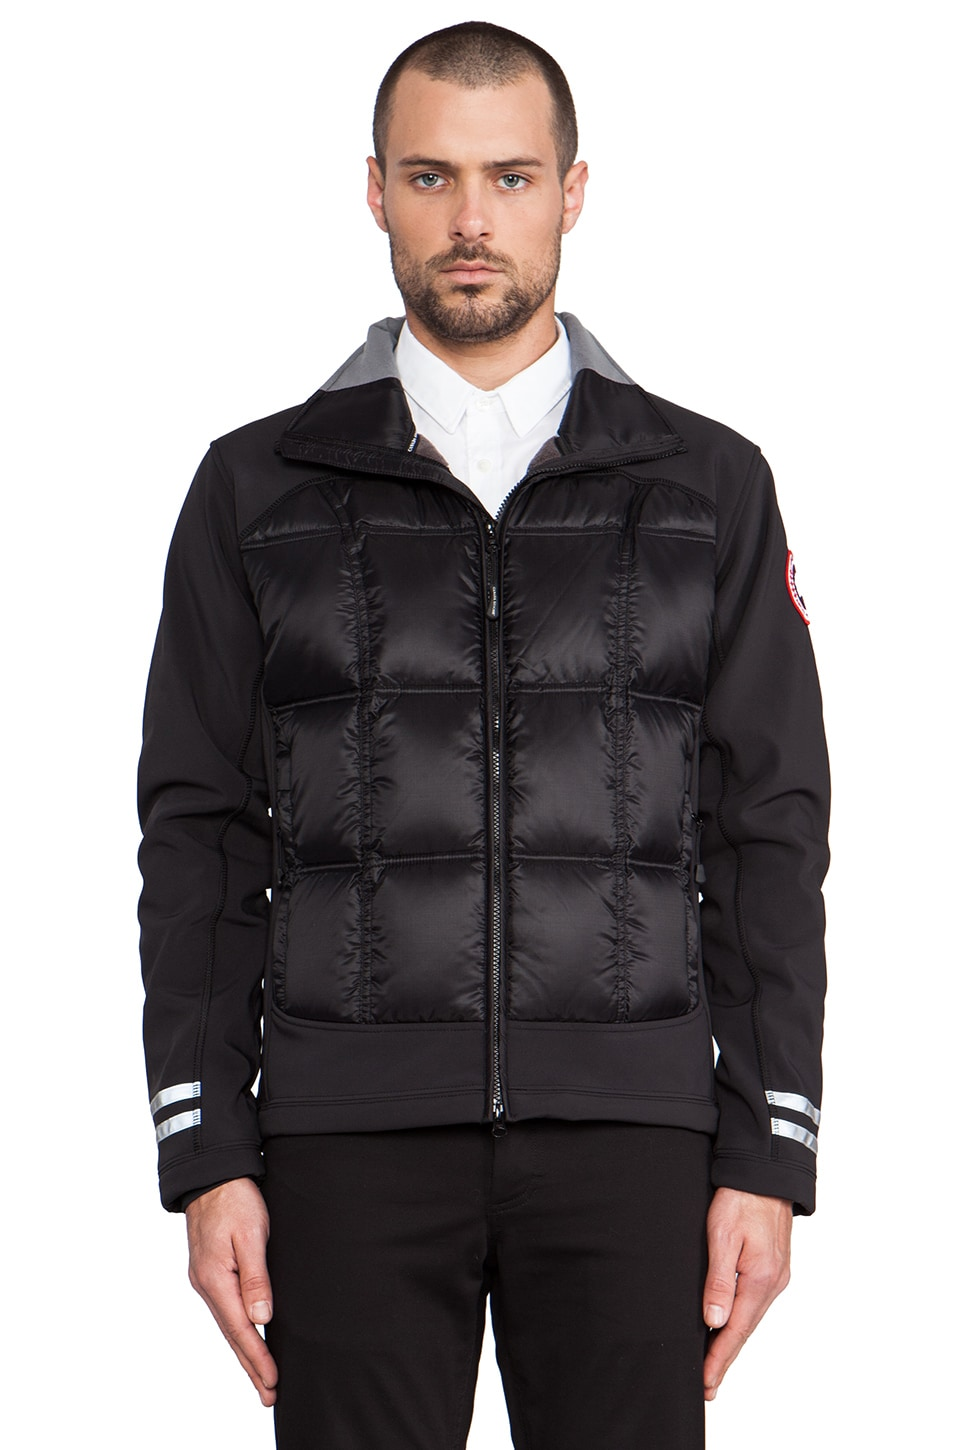 Canada Goose Hybridge Jacket in Black